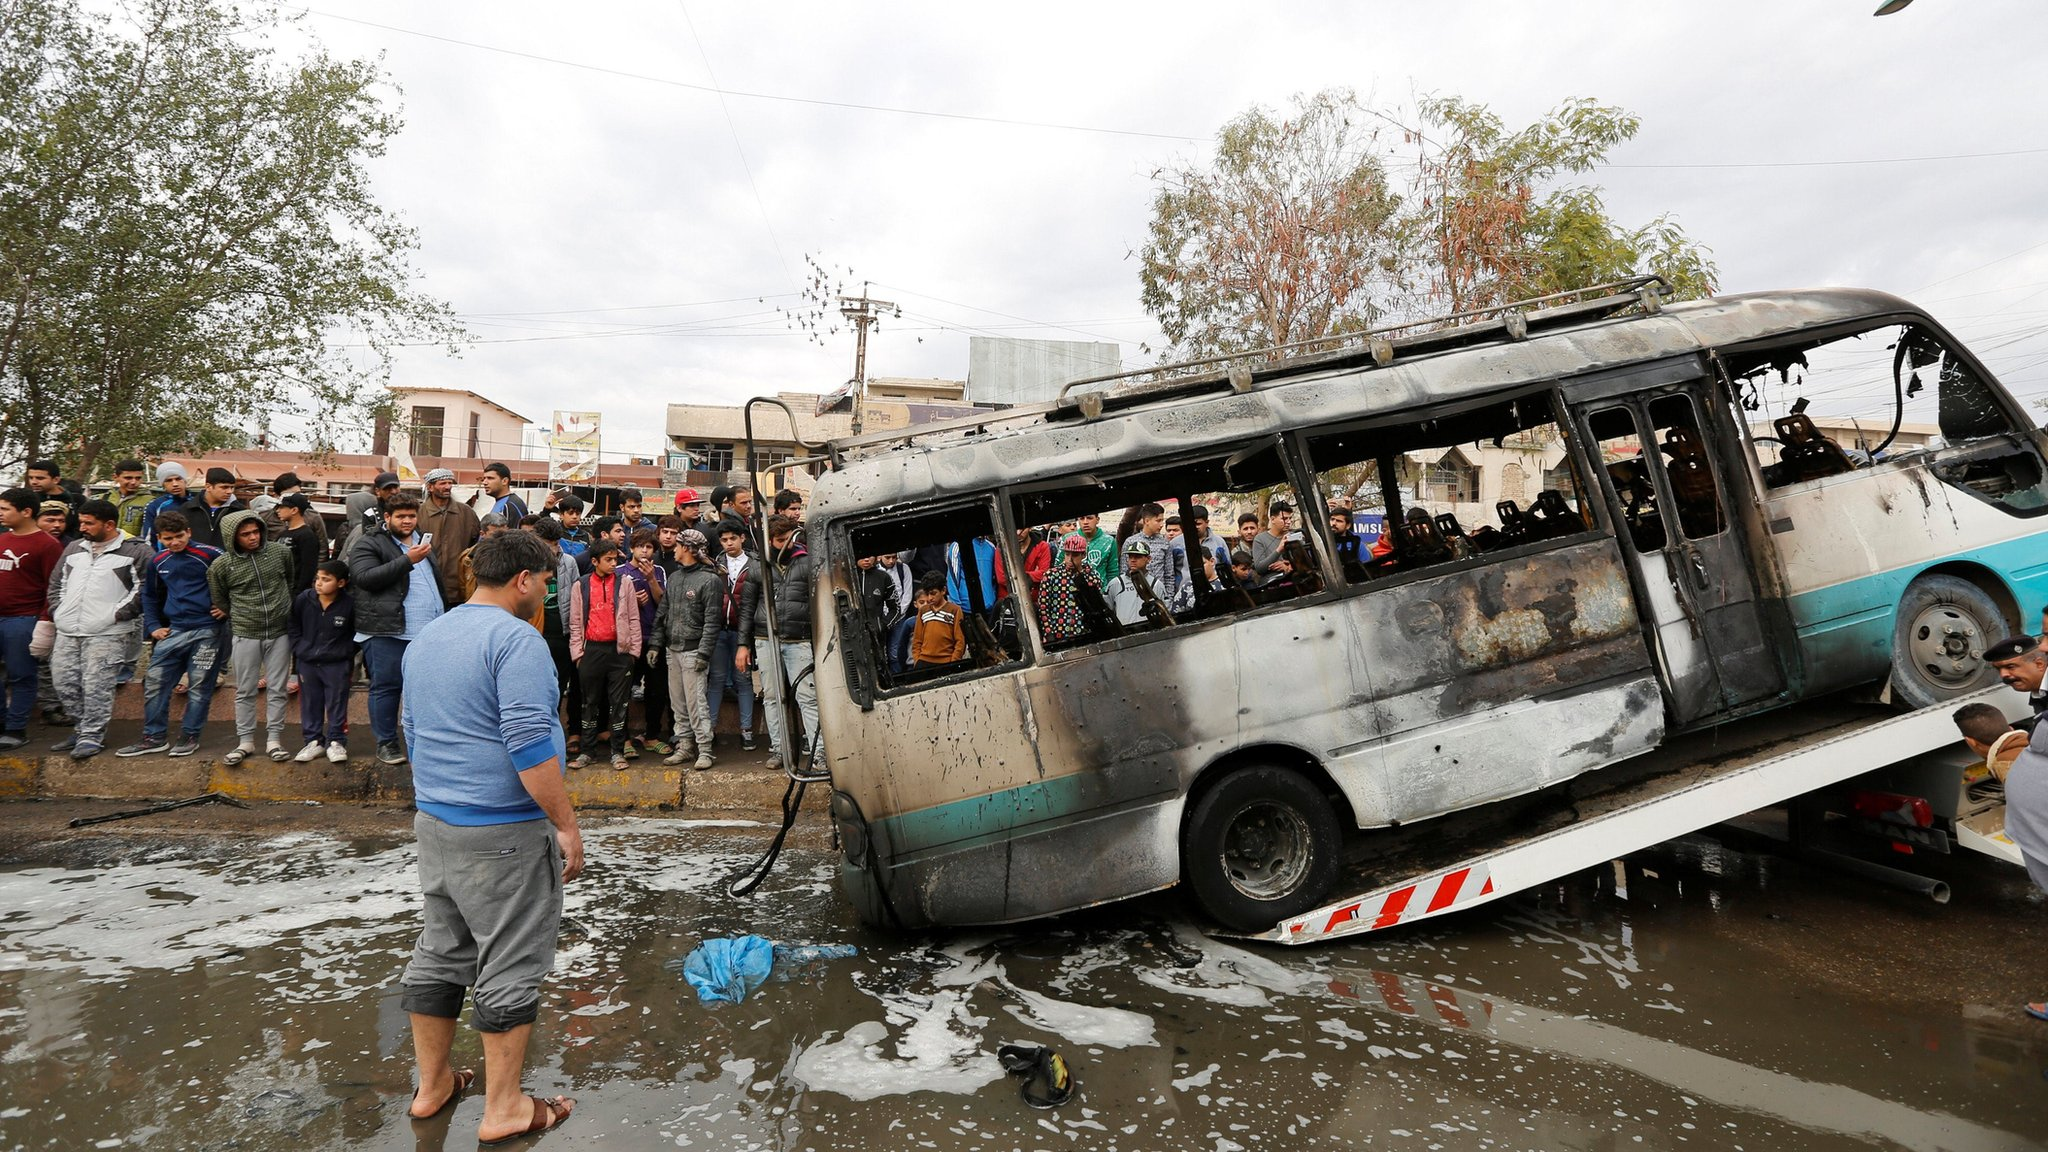 A burned bus is removed from the the scene of a suicide car bomb attack in Sadr City, Baghdad (2 January 2017)